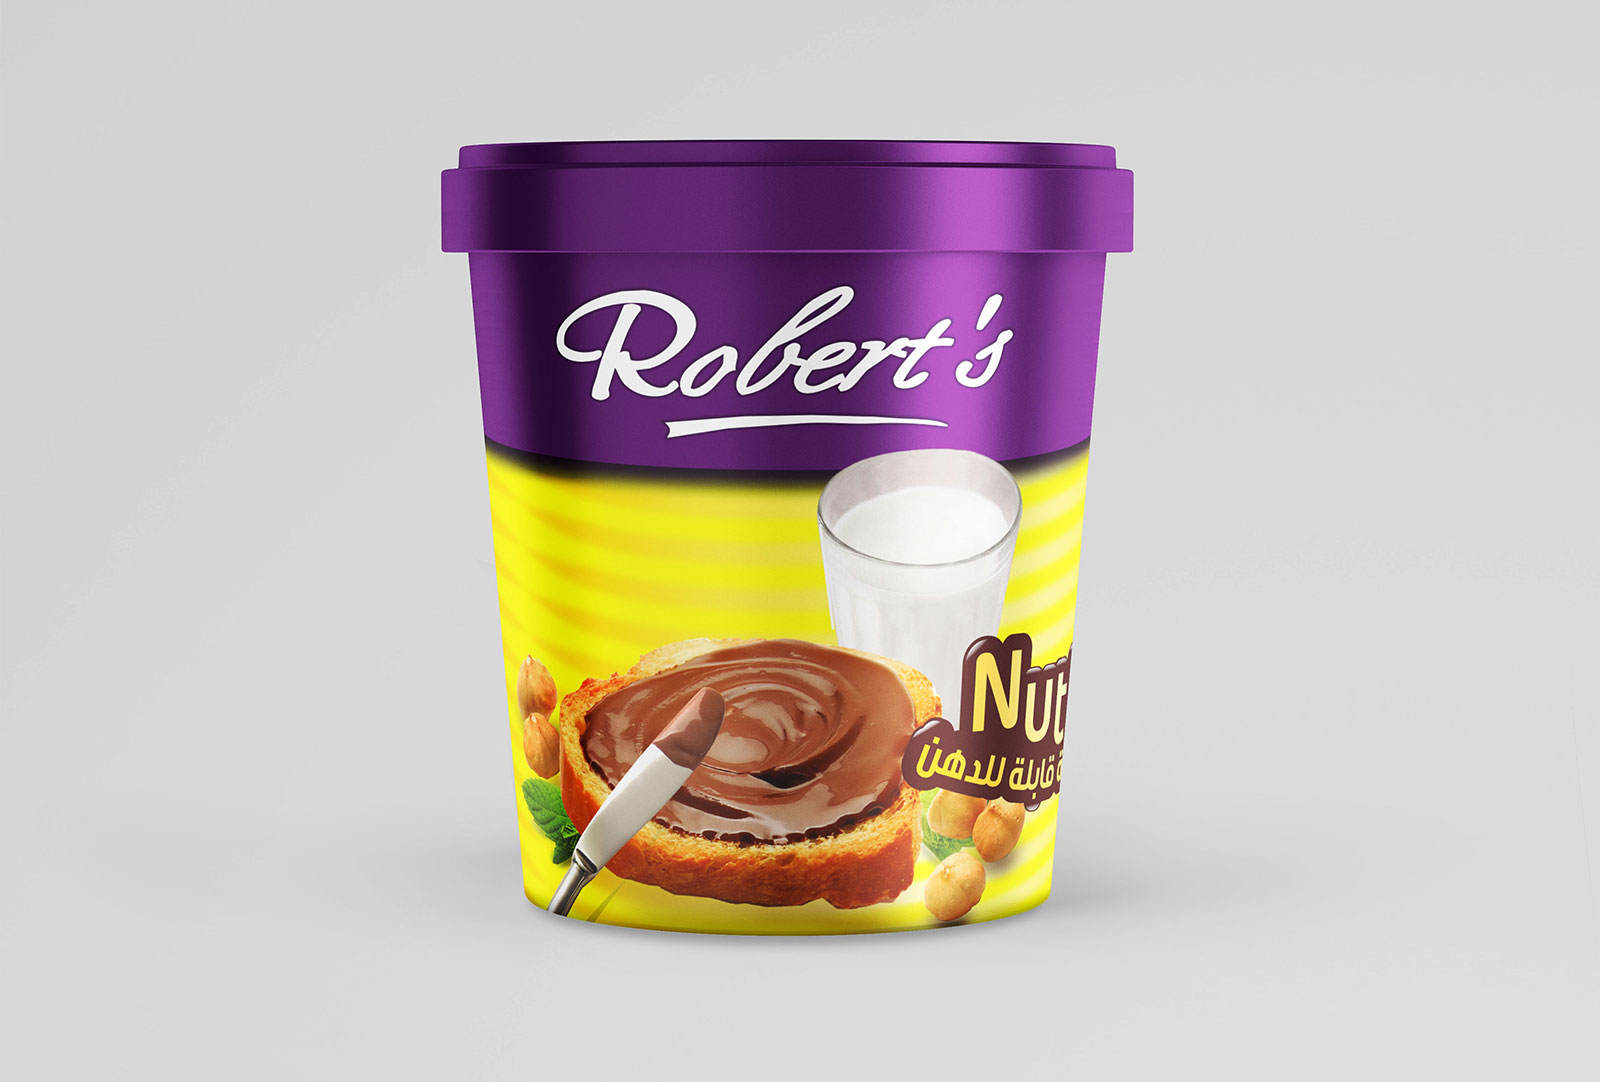 Roberts Nutty Chocolate Pack design by Creations